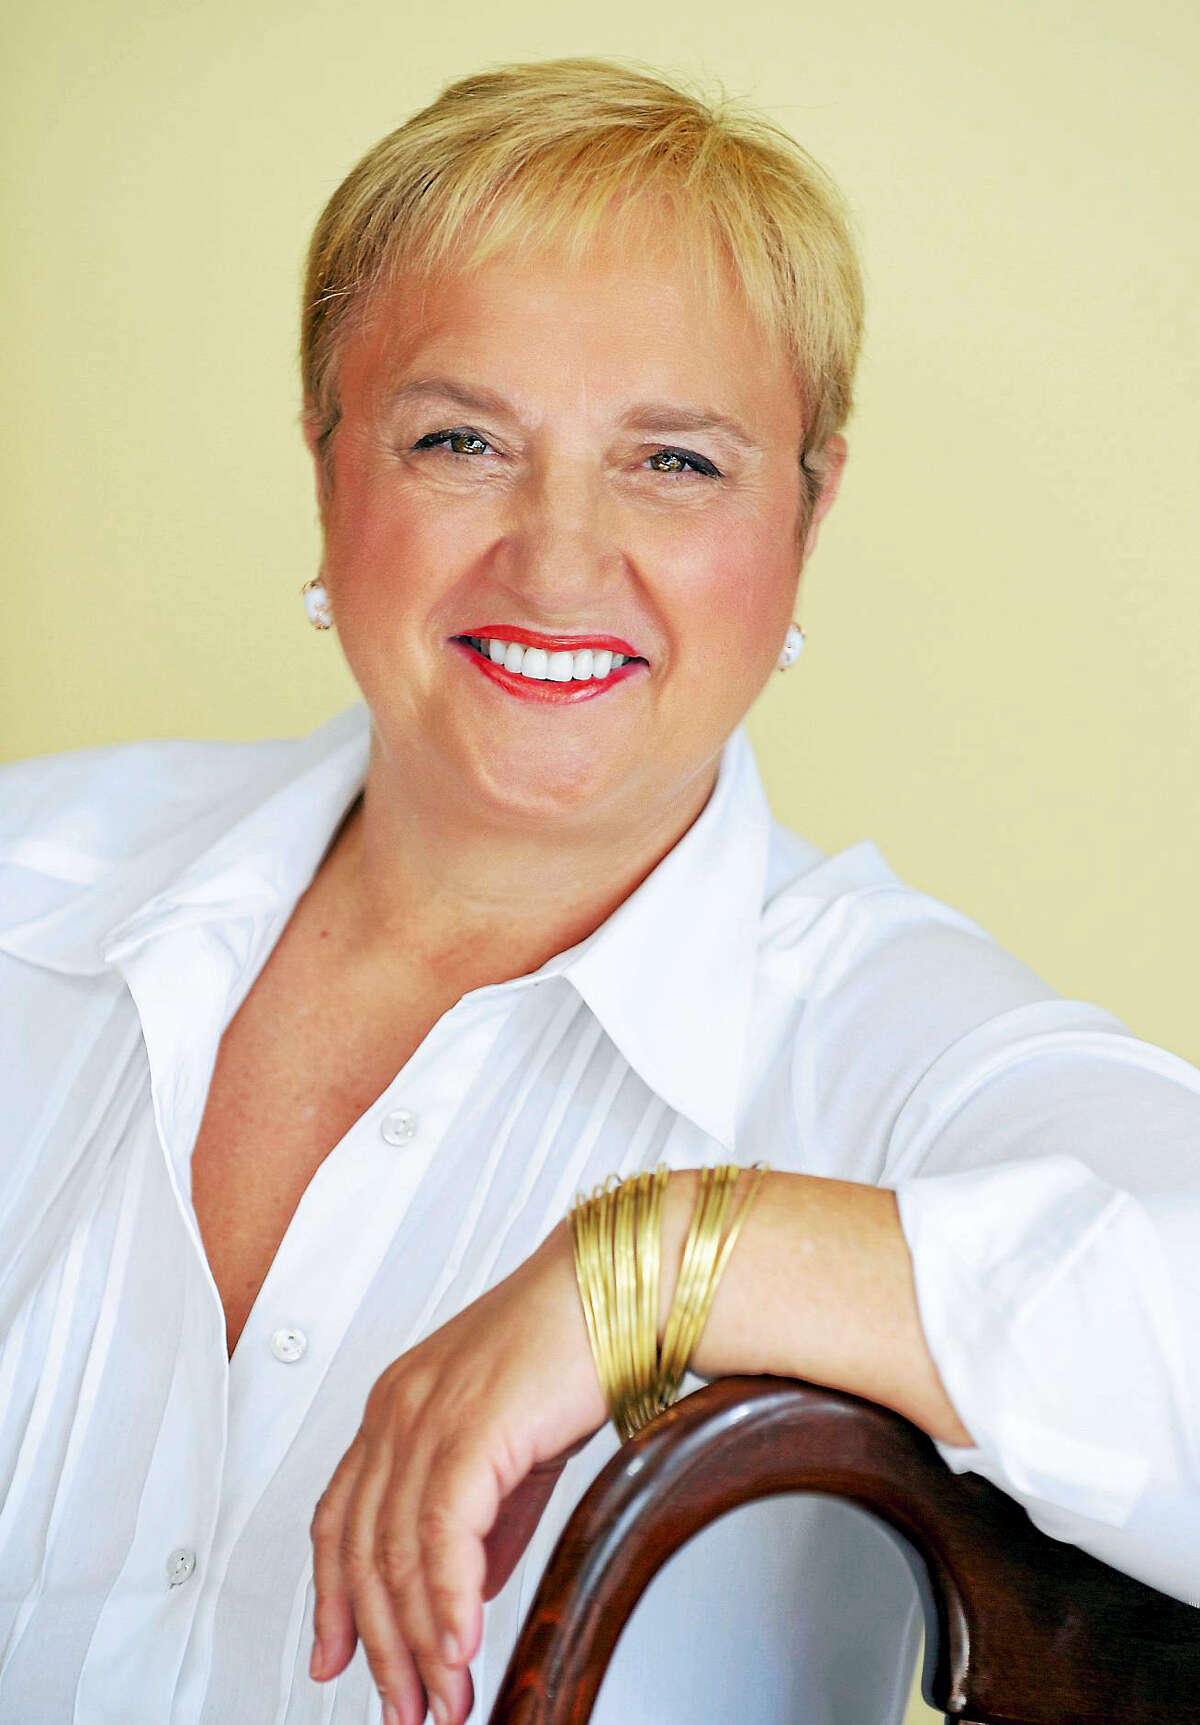 Photo by Diana DeLuciaLidia Bastianich, the Italian cook who found fame on PBS, will share her knowledge and culture with her audience at the Palace Theater Jan. 27.